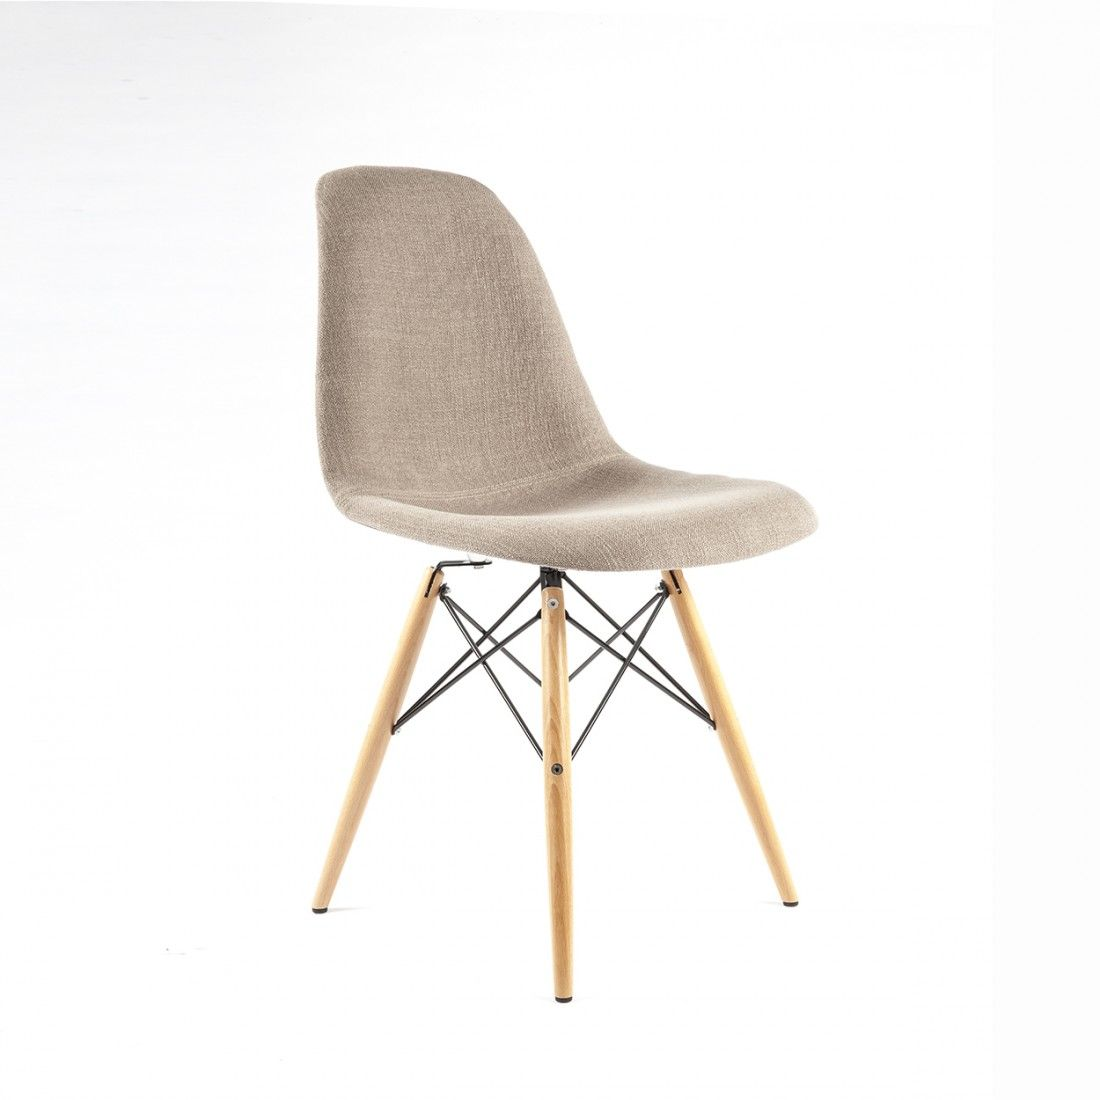 Mid-Century DSW Upholstered Dining Chair http://www.franceandson.com/catalog/product/view/id/24130/s/dsw-upholstered-dining-chair/